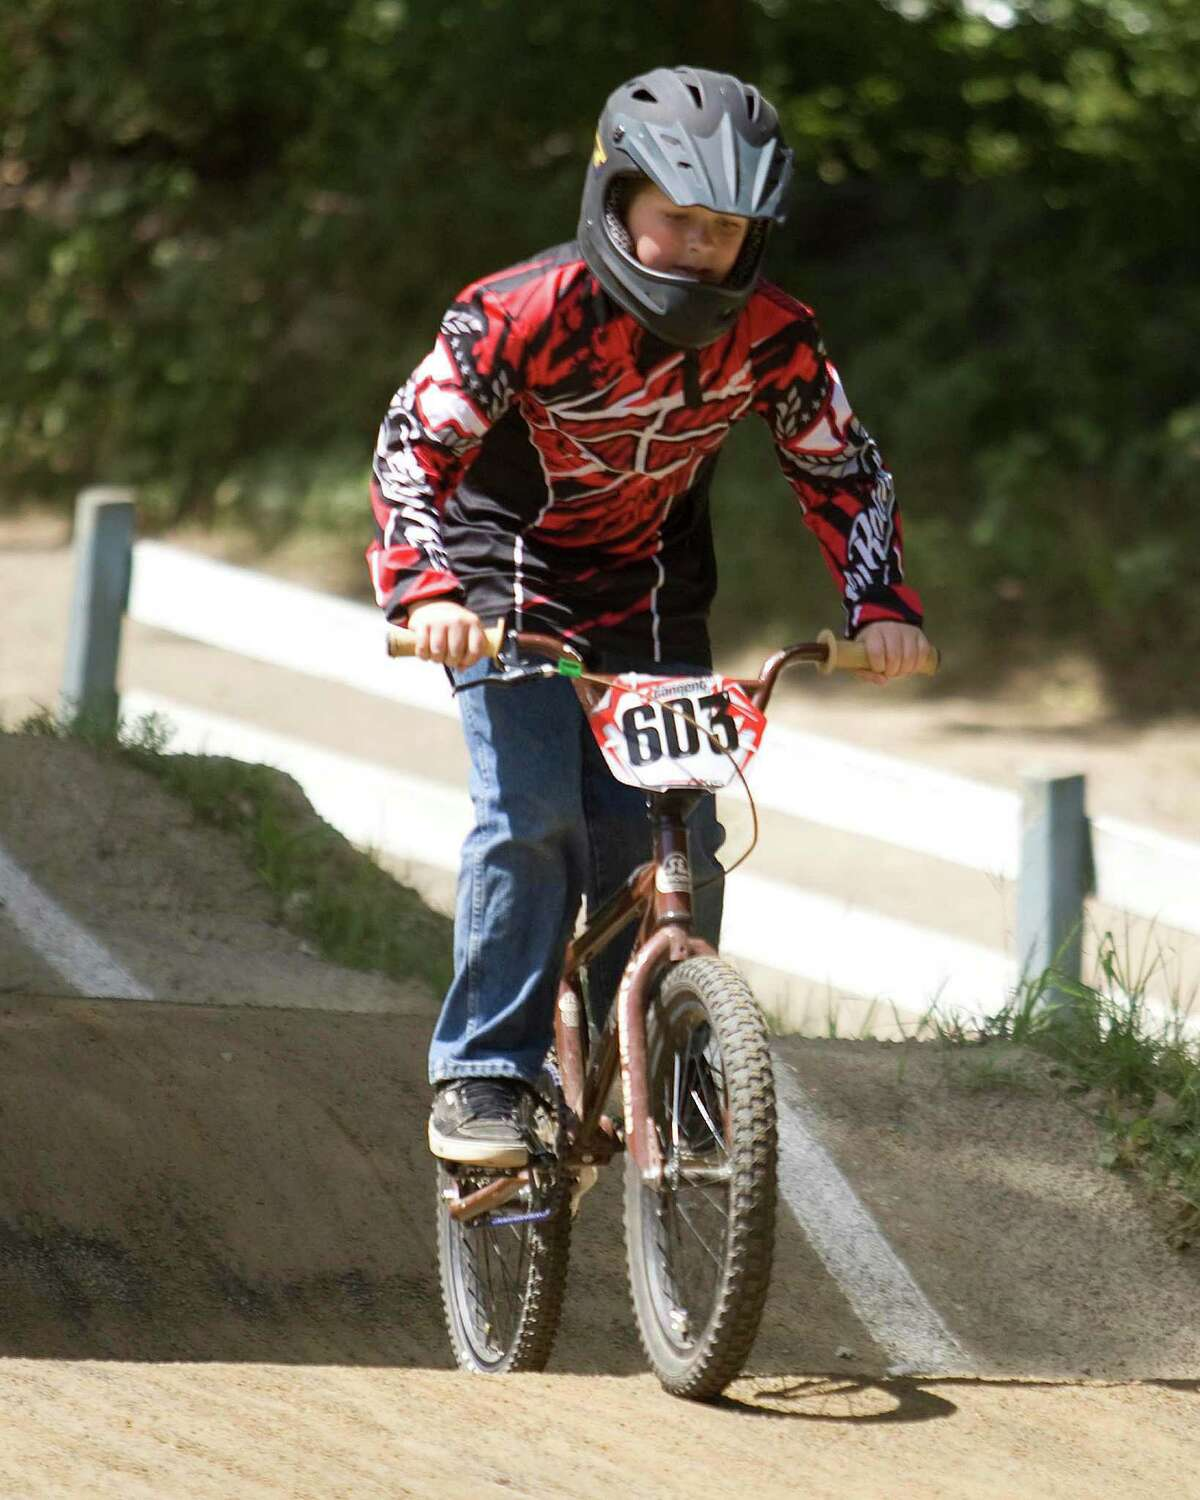 Jimmy Godfrey, 11, of Bethel, competes in the Northeast Regional BMX Championships in August 2010 at the BMX course at Mitchell Park in Bethel.